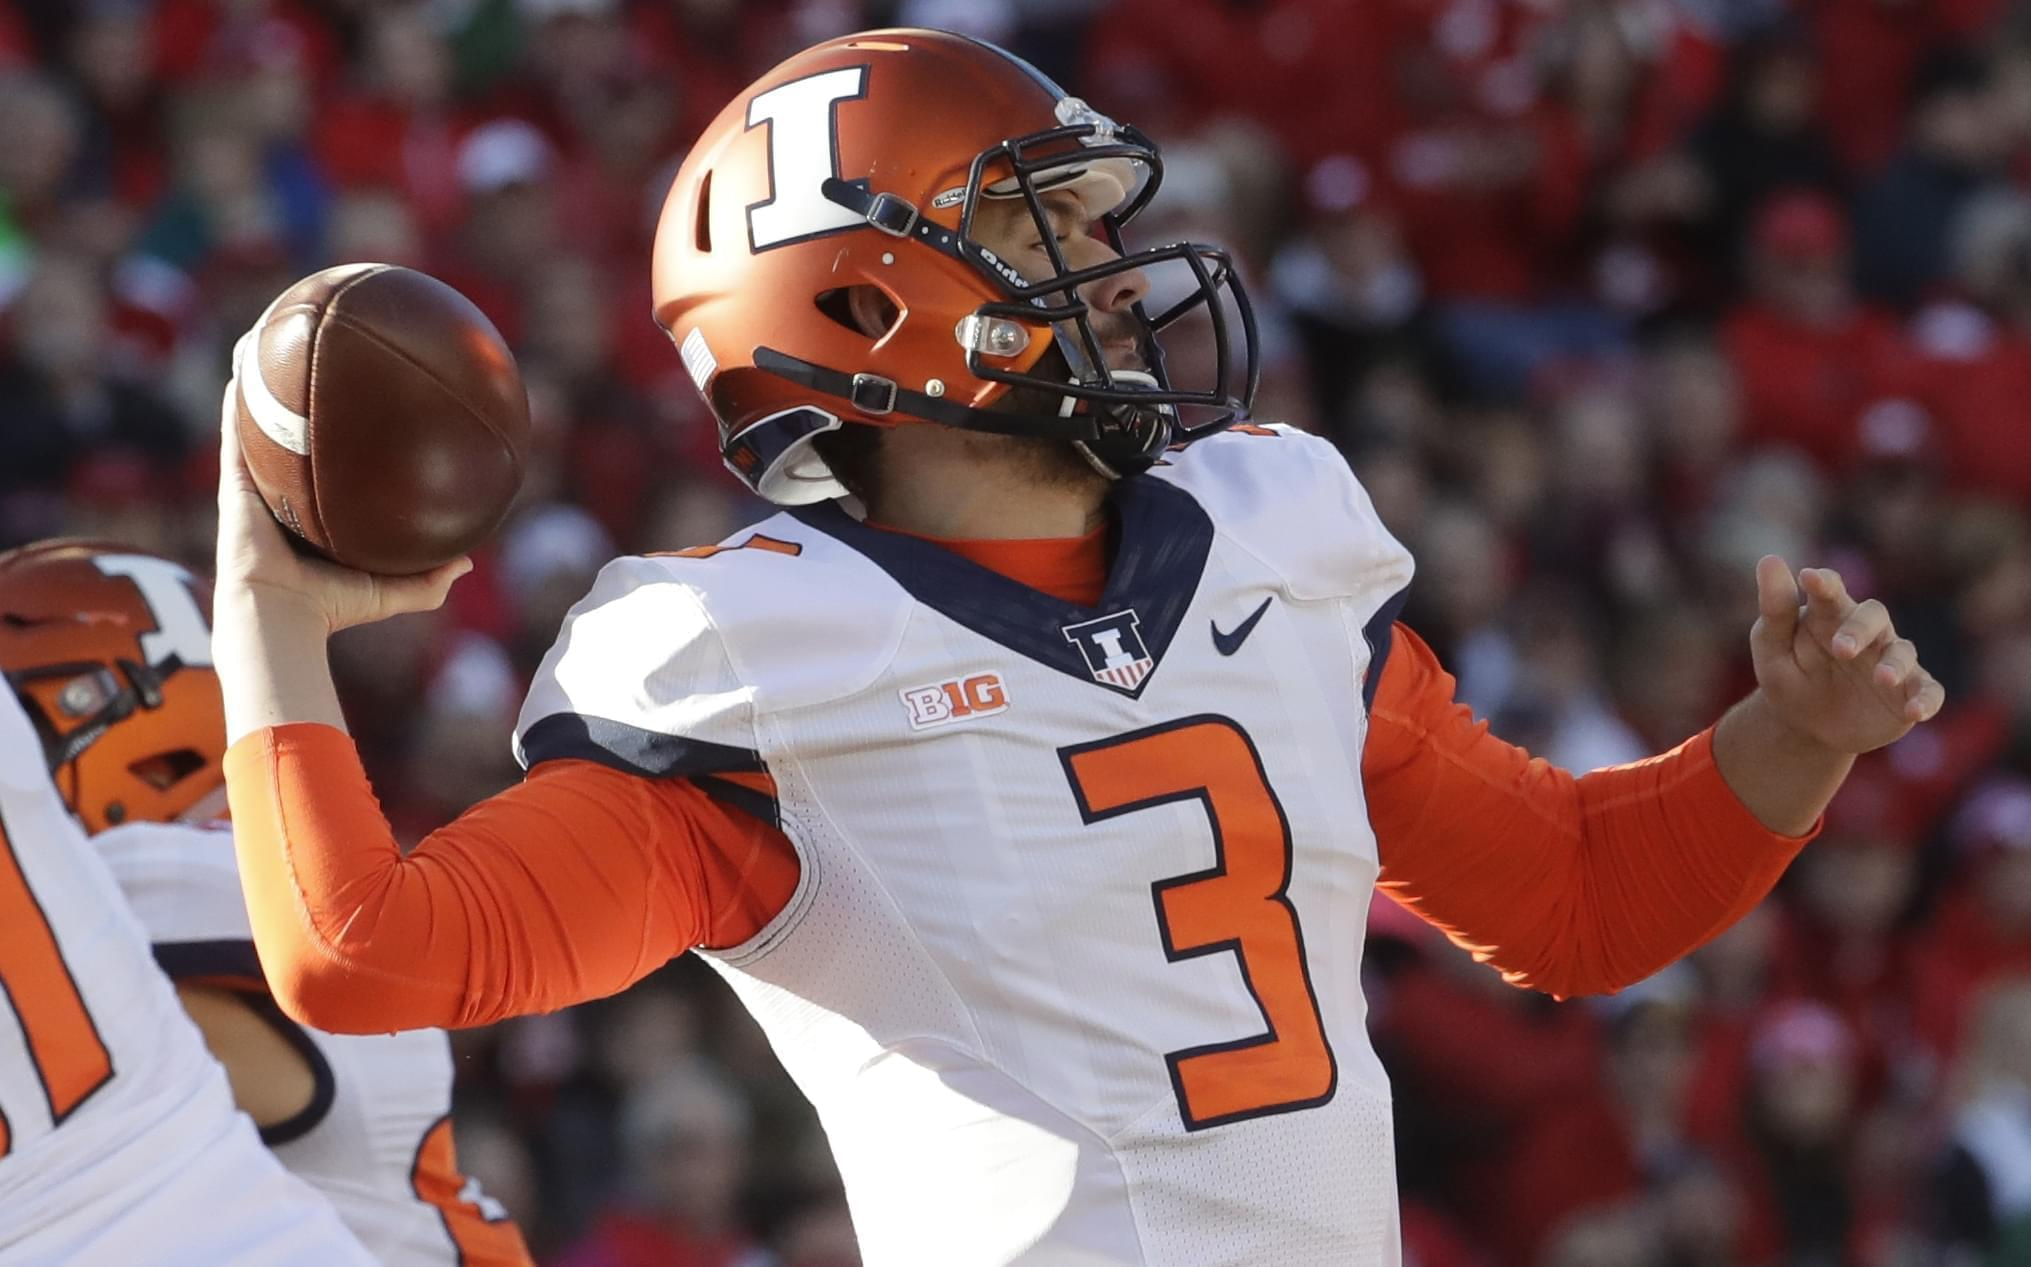 Illinois quarterback Jeff George Jr. throws during the first half of an NCAA college football game against Wisconsin Saturday in Madison, Wis.